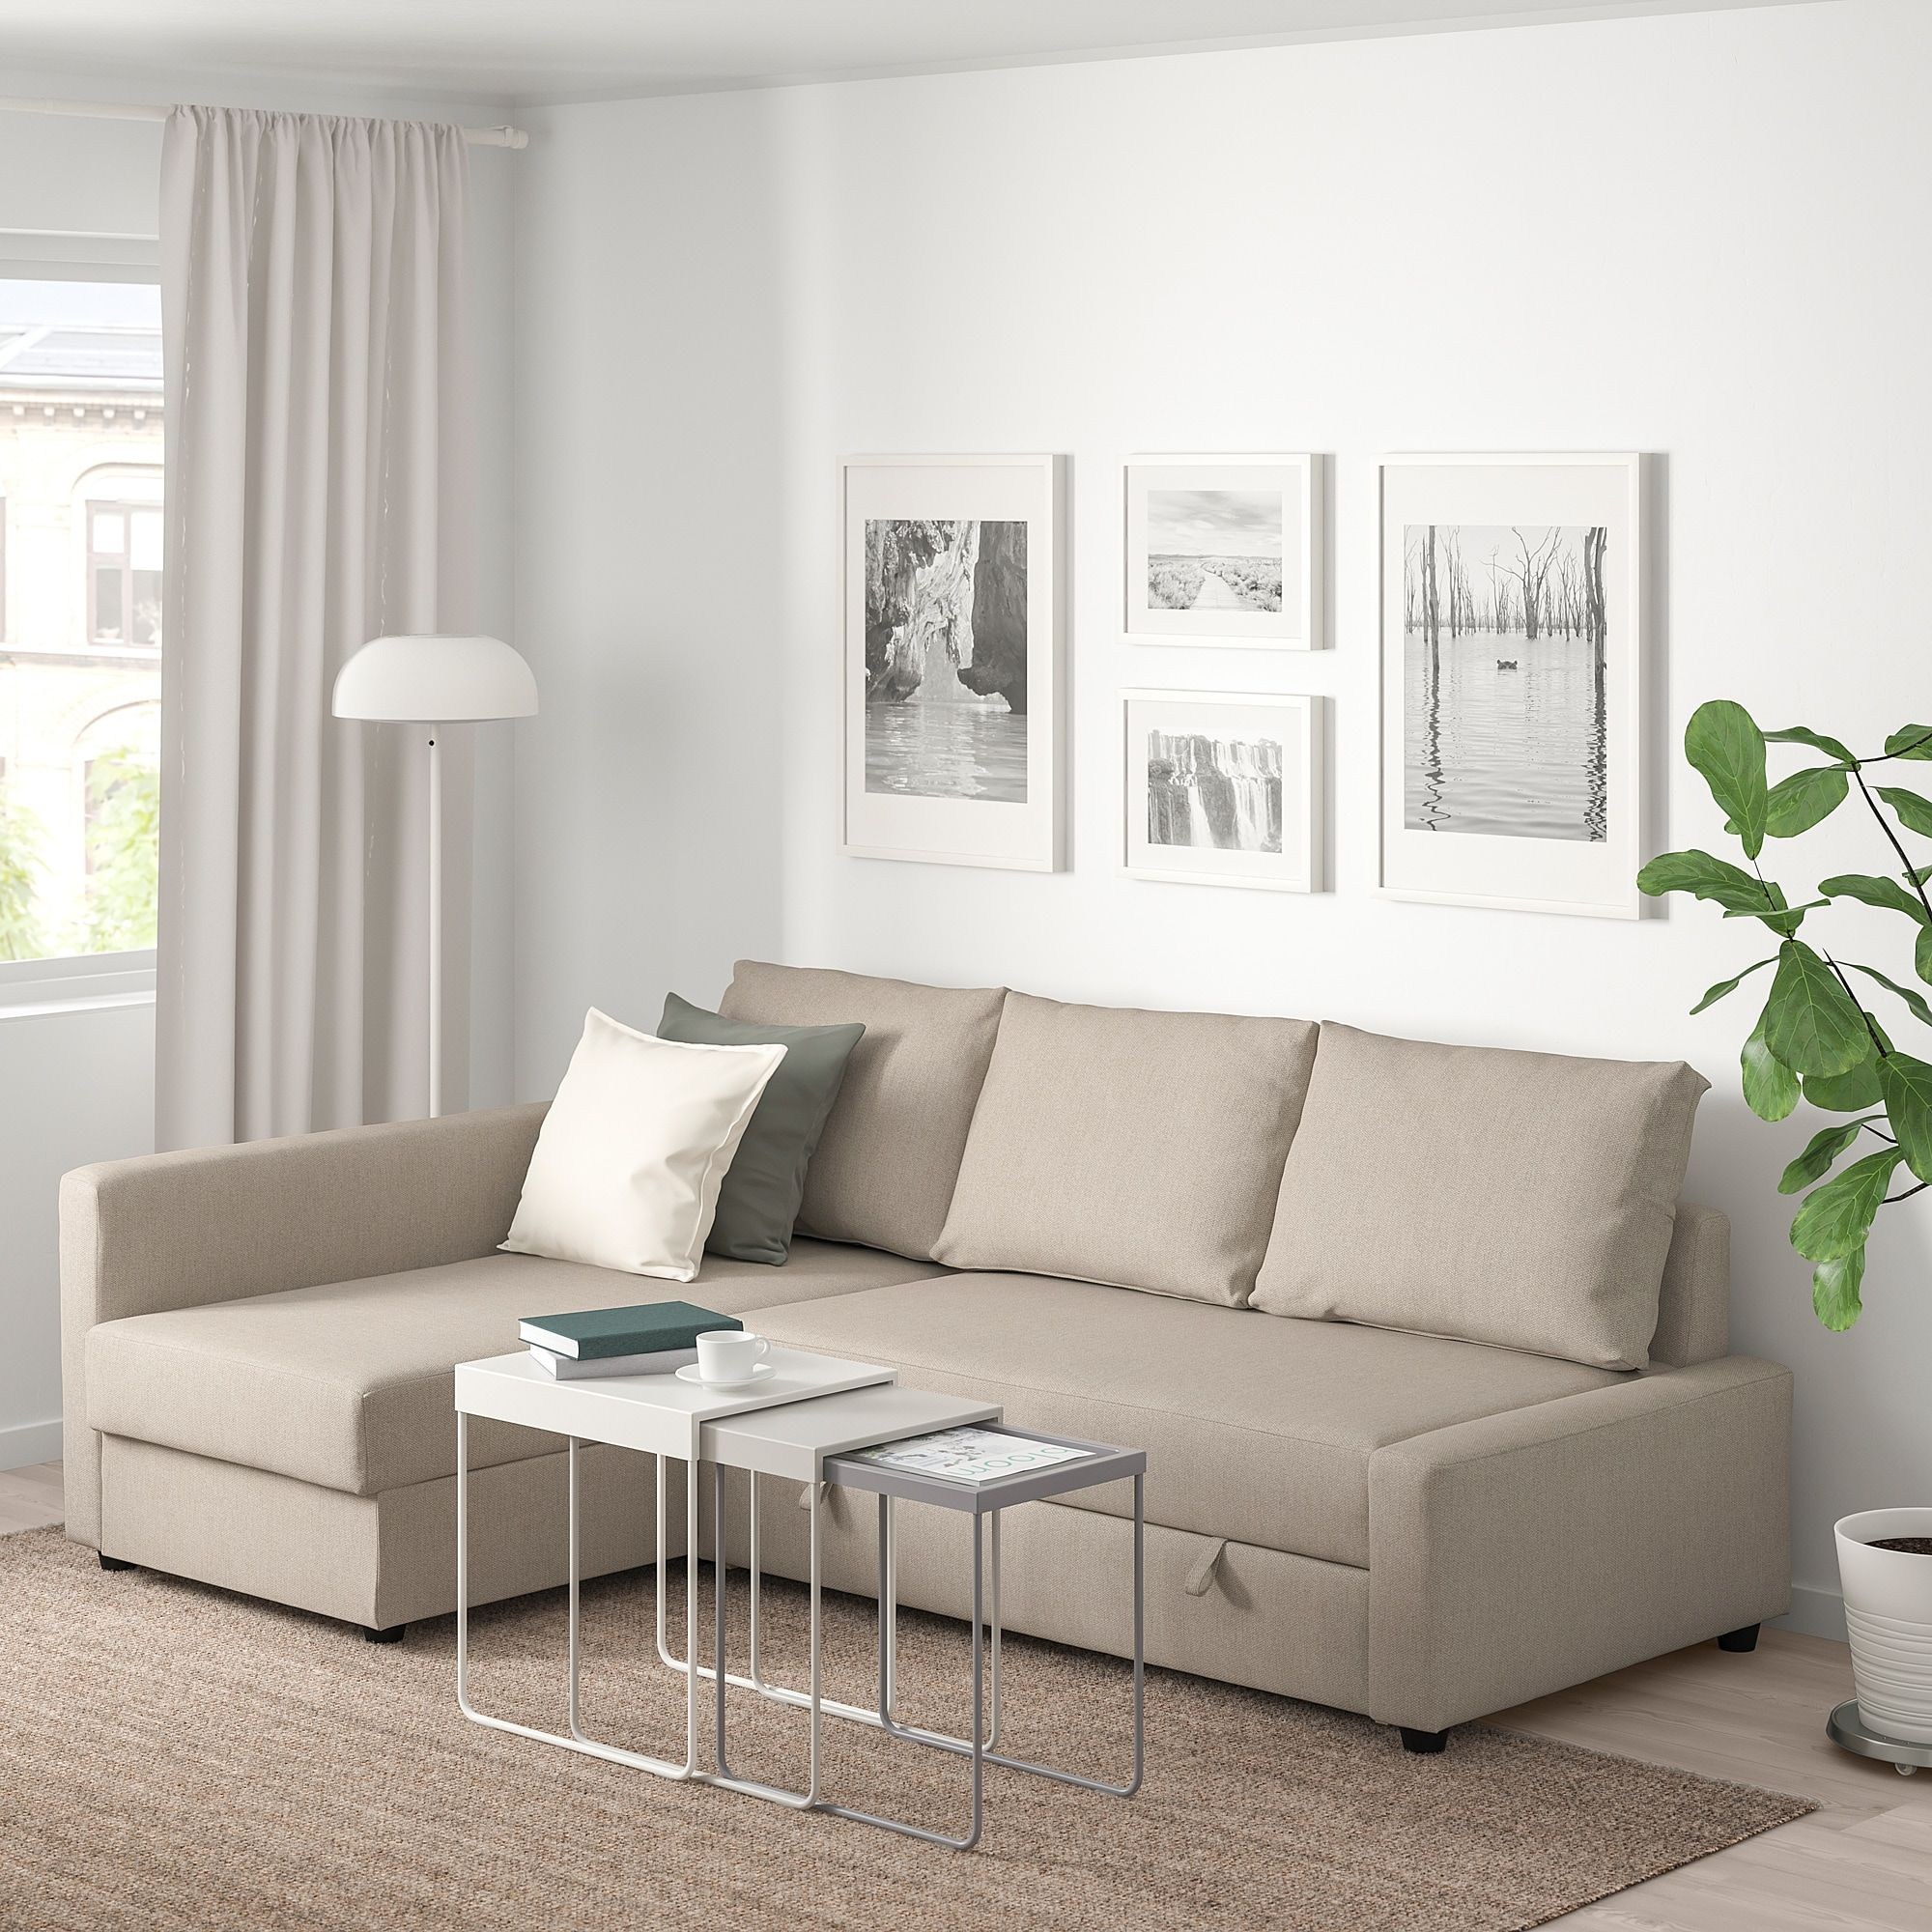 Friheten Hoekslaapbank Met Opberger Hyllie Beige Ikea In 2020 Sofa Bed With Storage Corner Sofa Bed With Storage Corner Sofa Bed